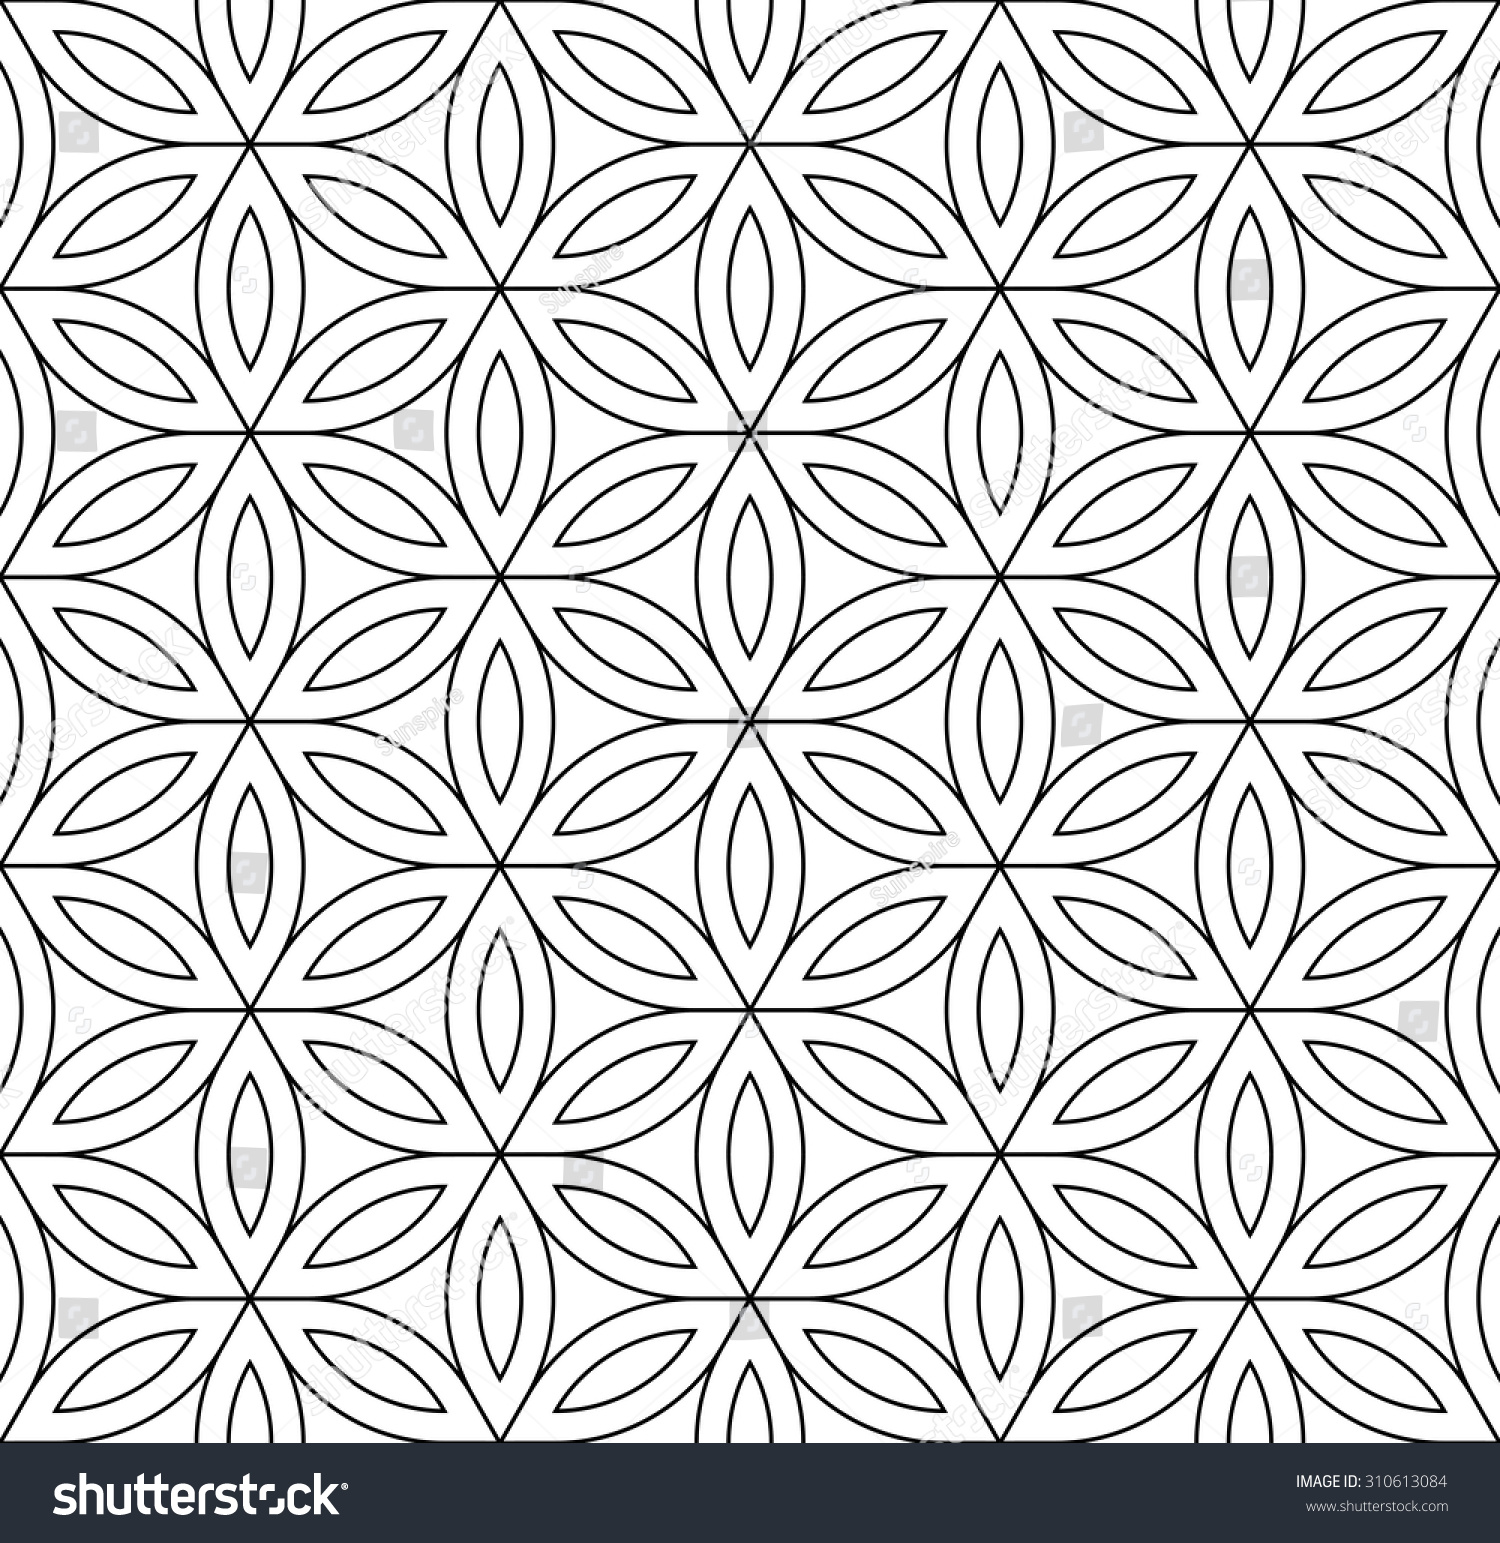 Bed sheet pattern texture - Vector Modern Seamless Pattern Sacred Geometry Stylish Background Flower Of Life Black And White